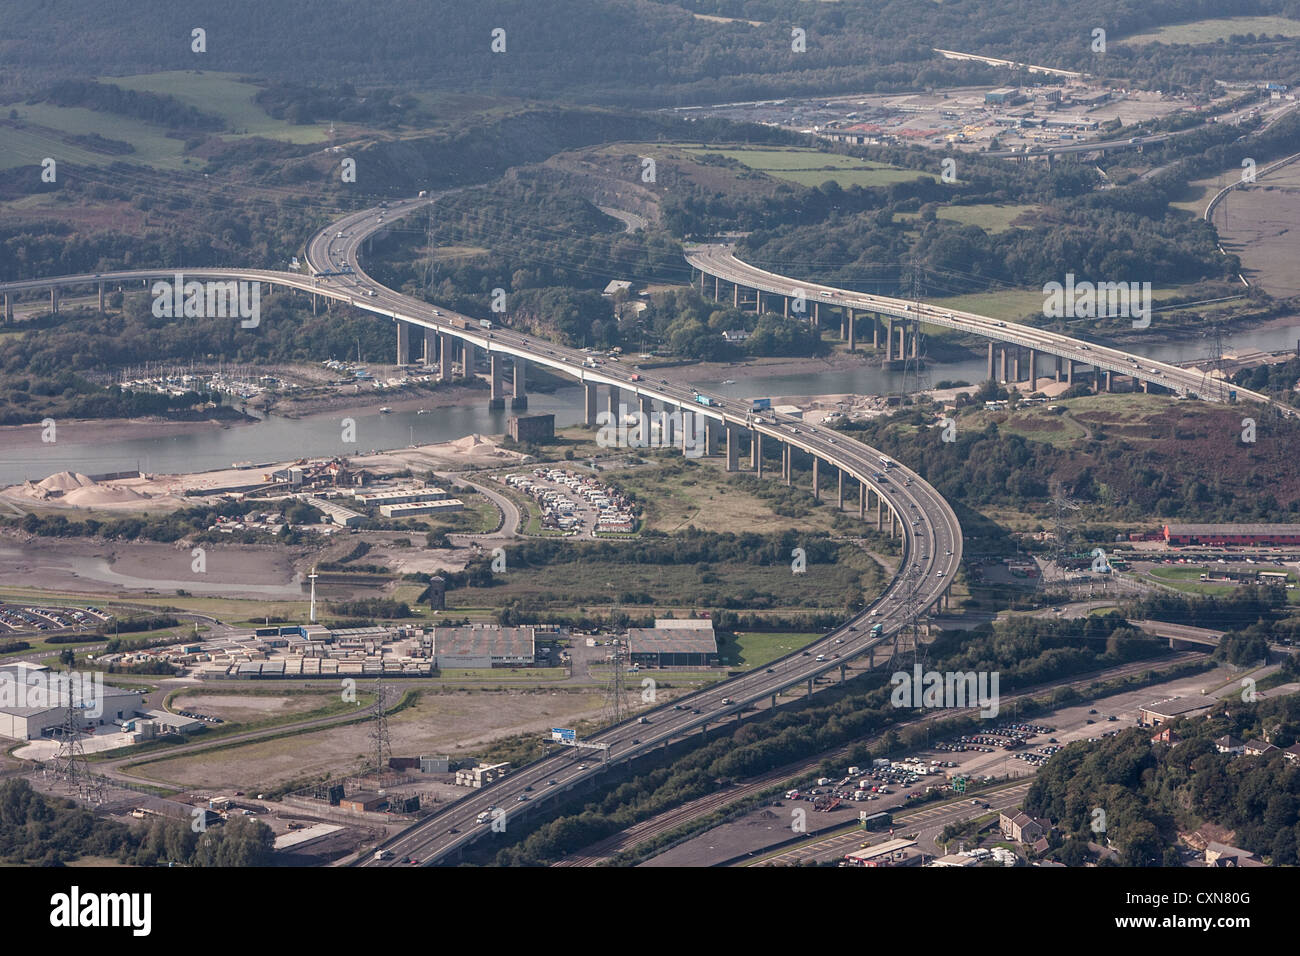 An aerial view of the new (left) and old (right) Briton Ferry Bridges spanning the river Neath between Port Talbot Stock Photo